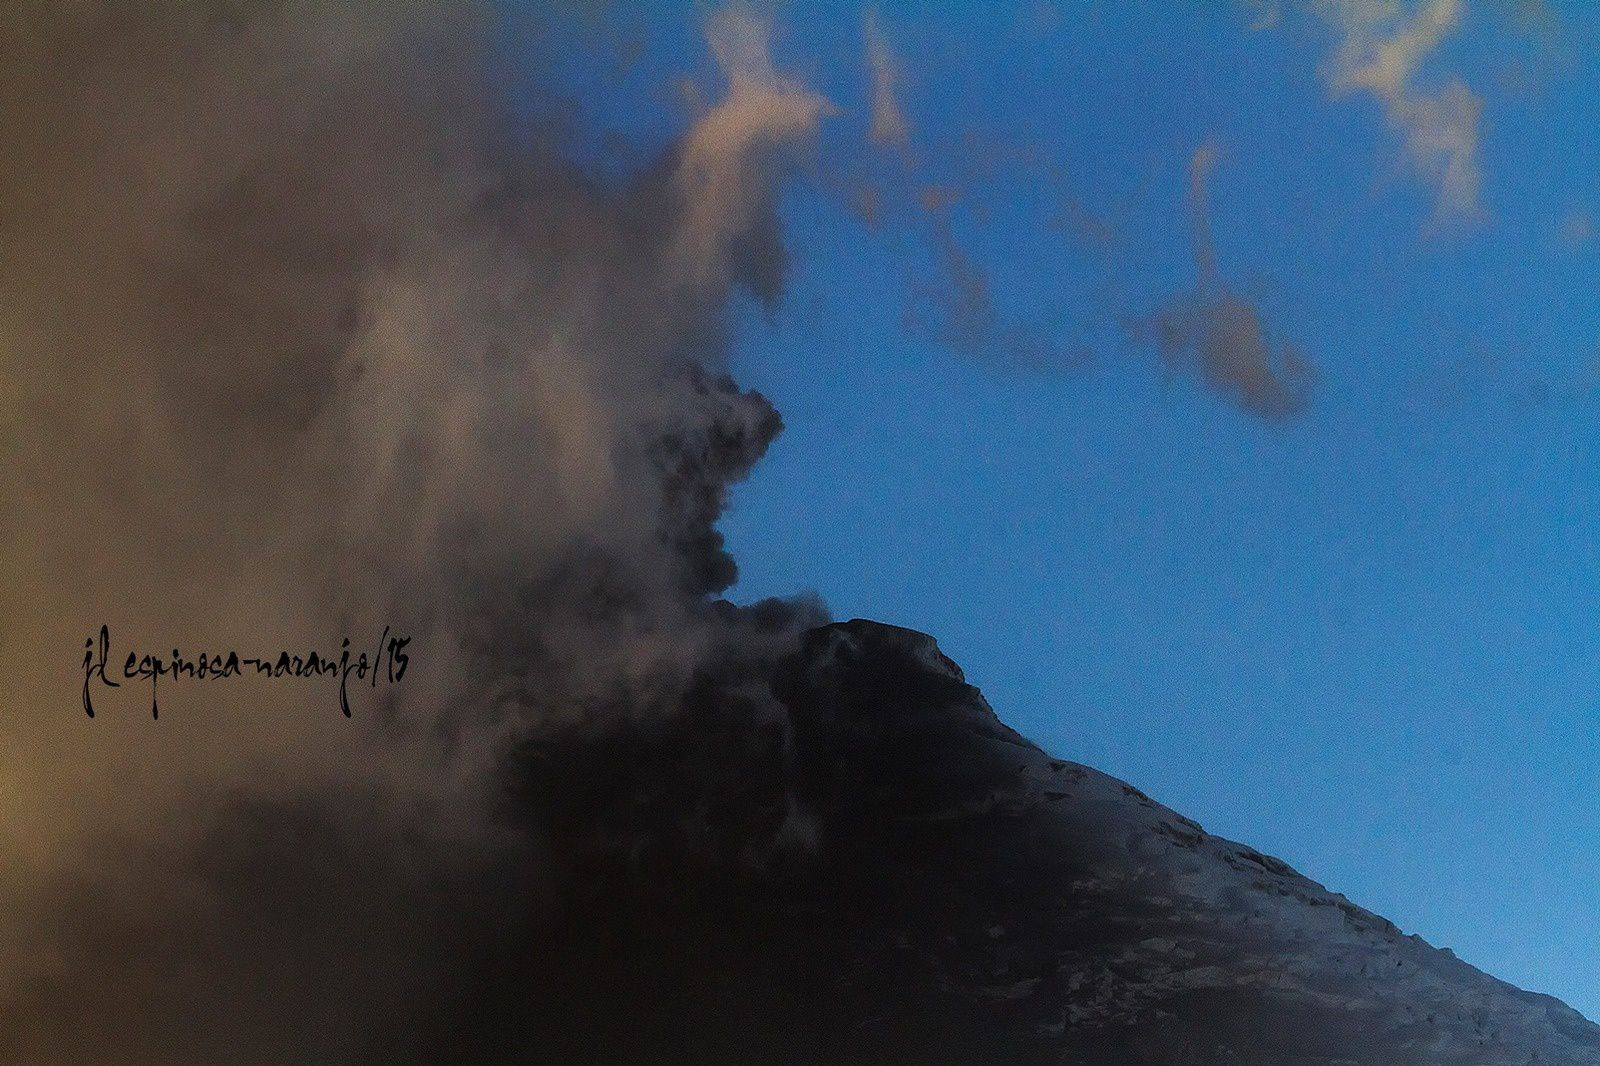 Cotopaxi - emission of ash on August 18 in the afternoon - photo Jose Luis Espinosa-Naranjo